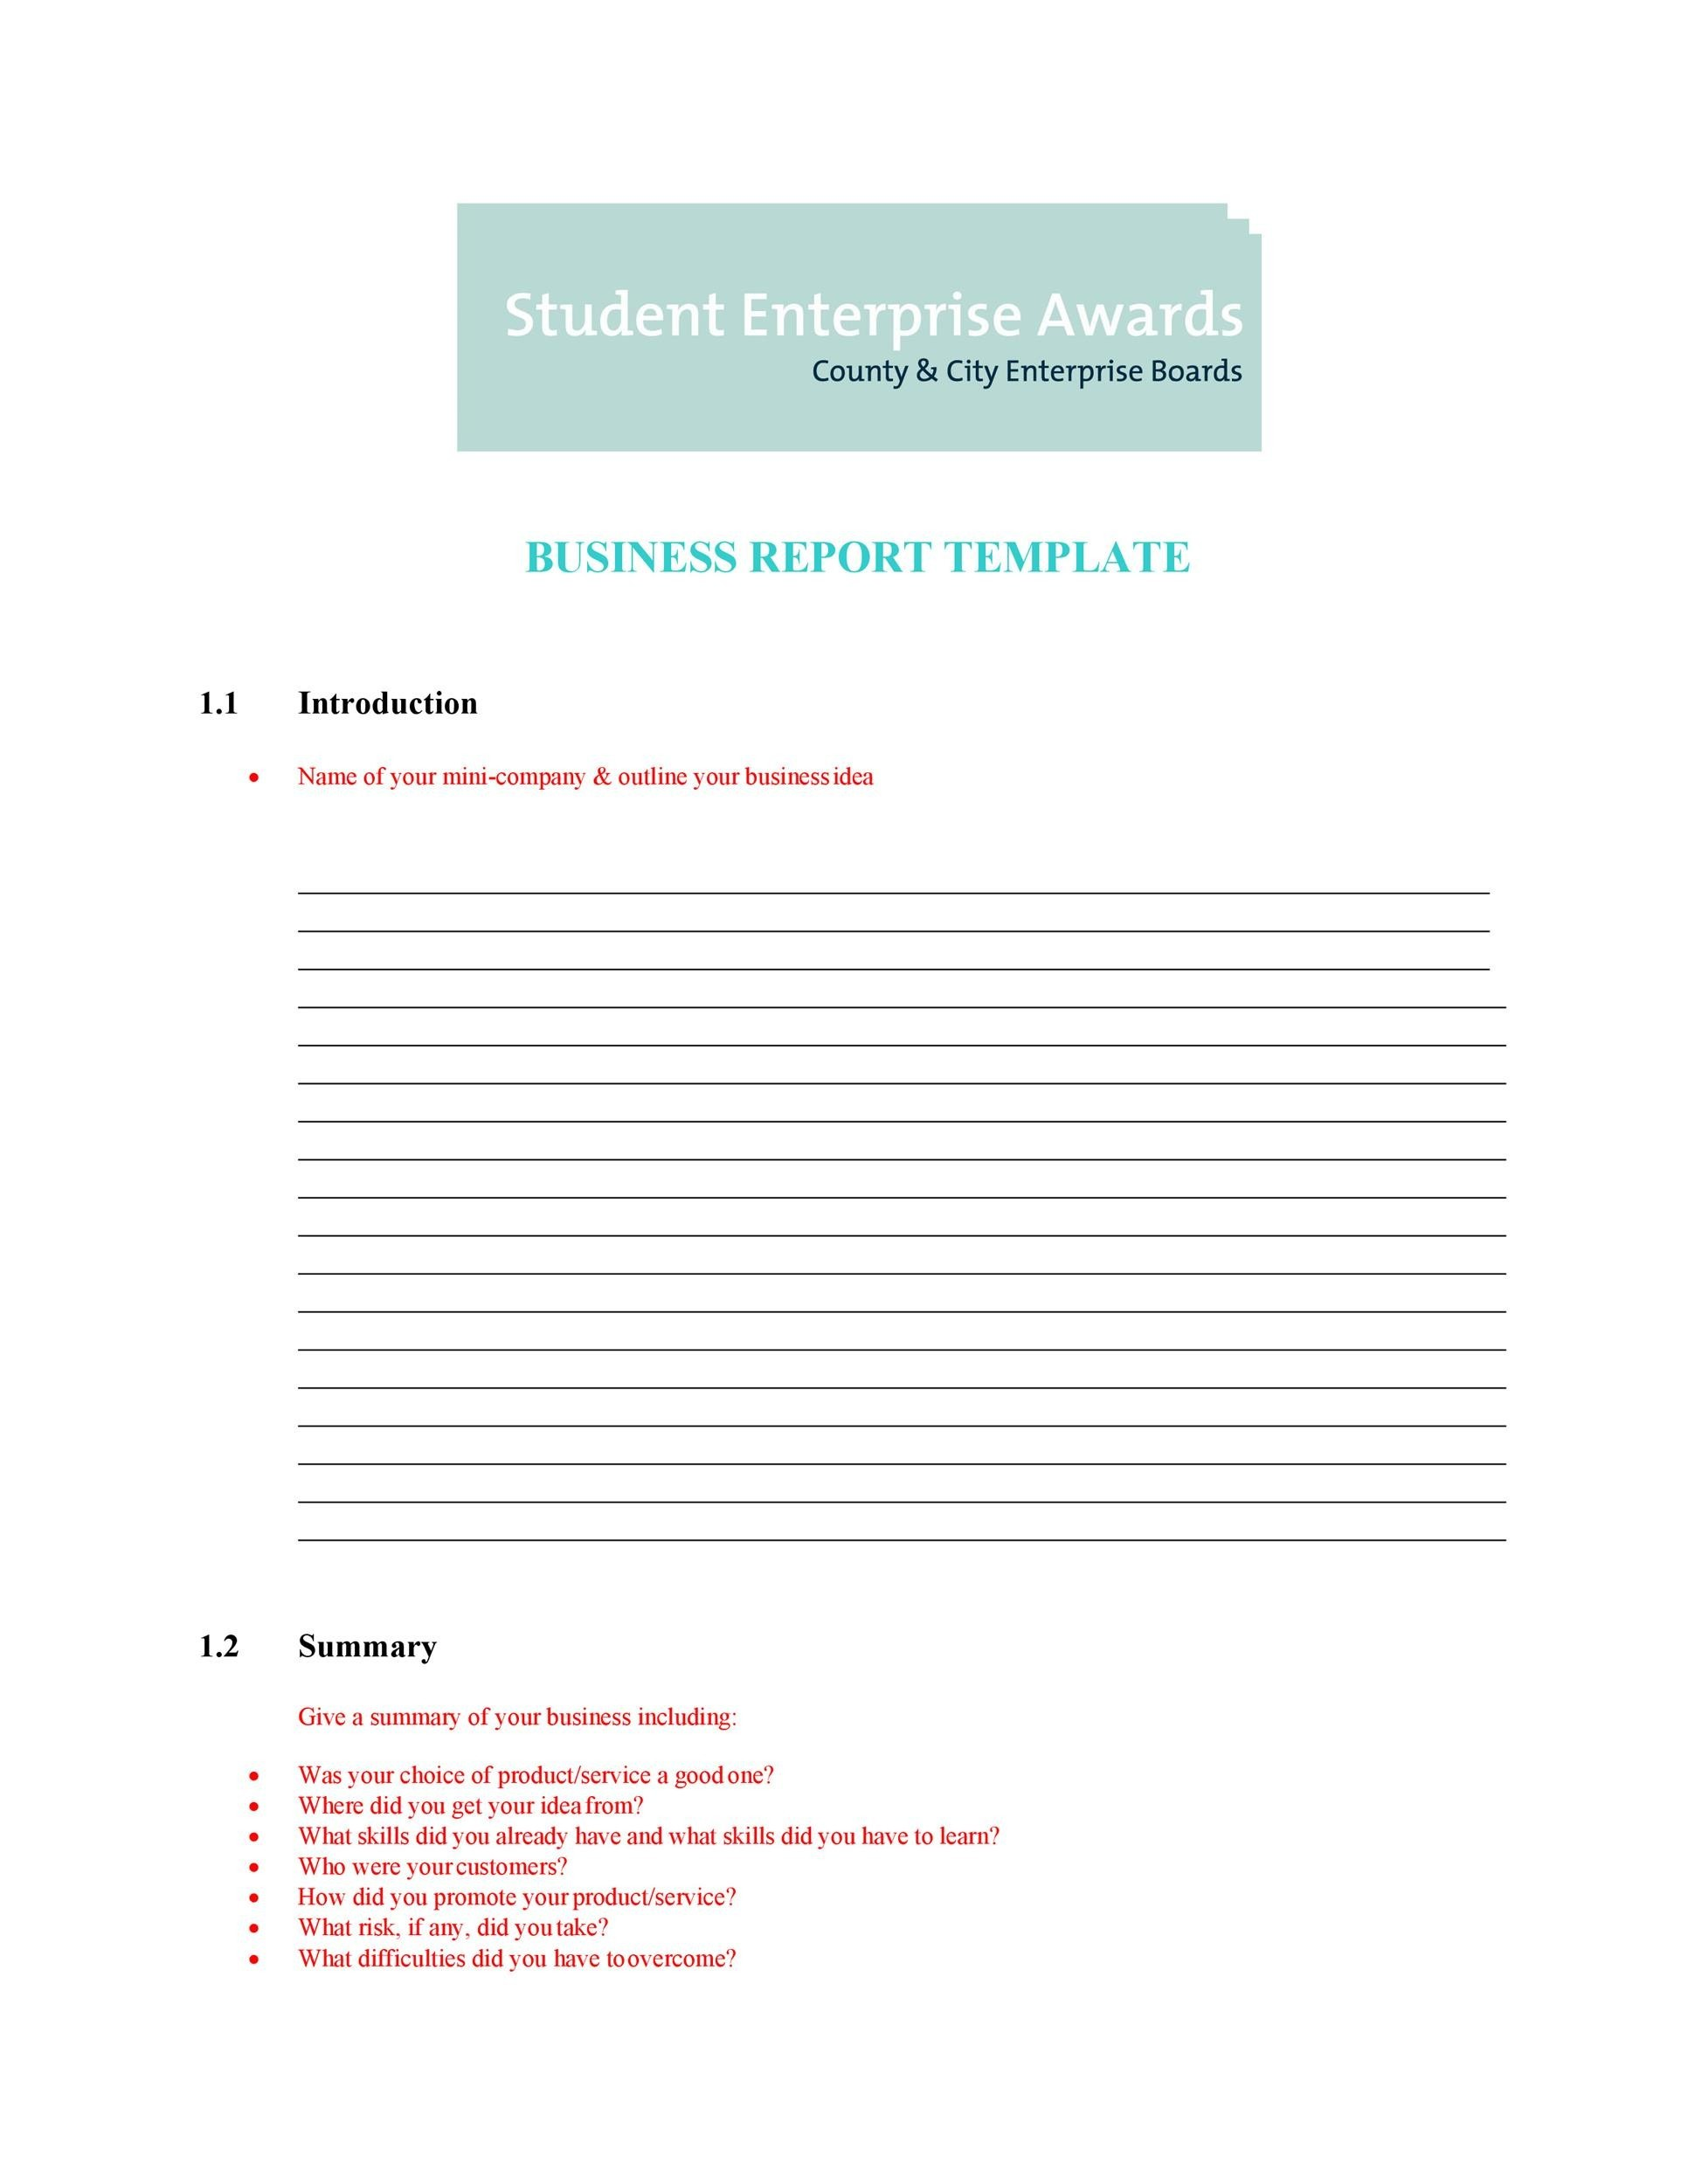 30+ Business Report Templates & Format Examples - Template Lab